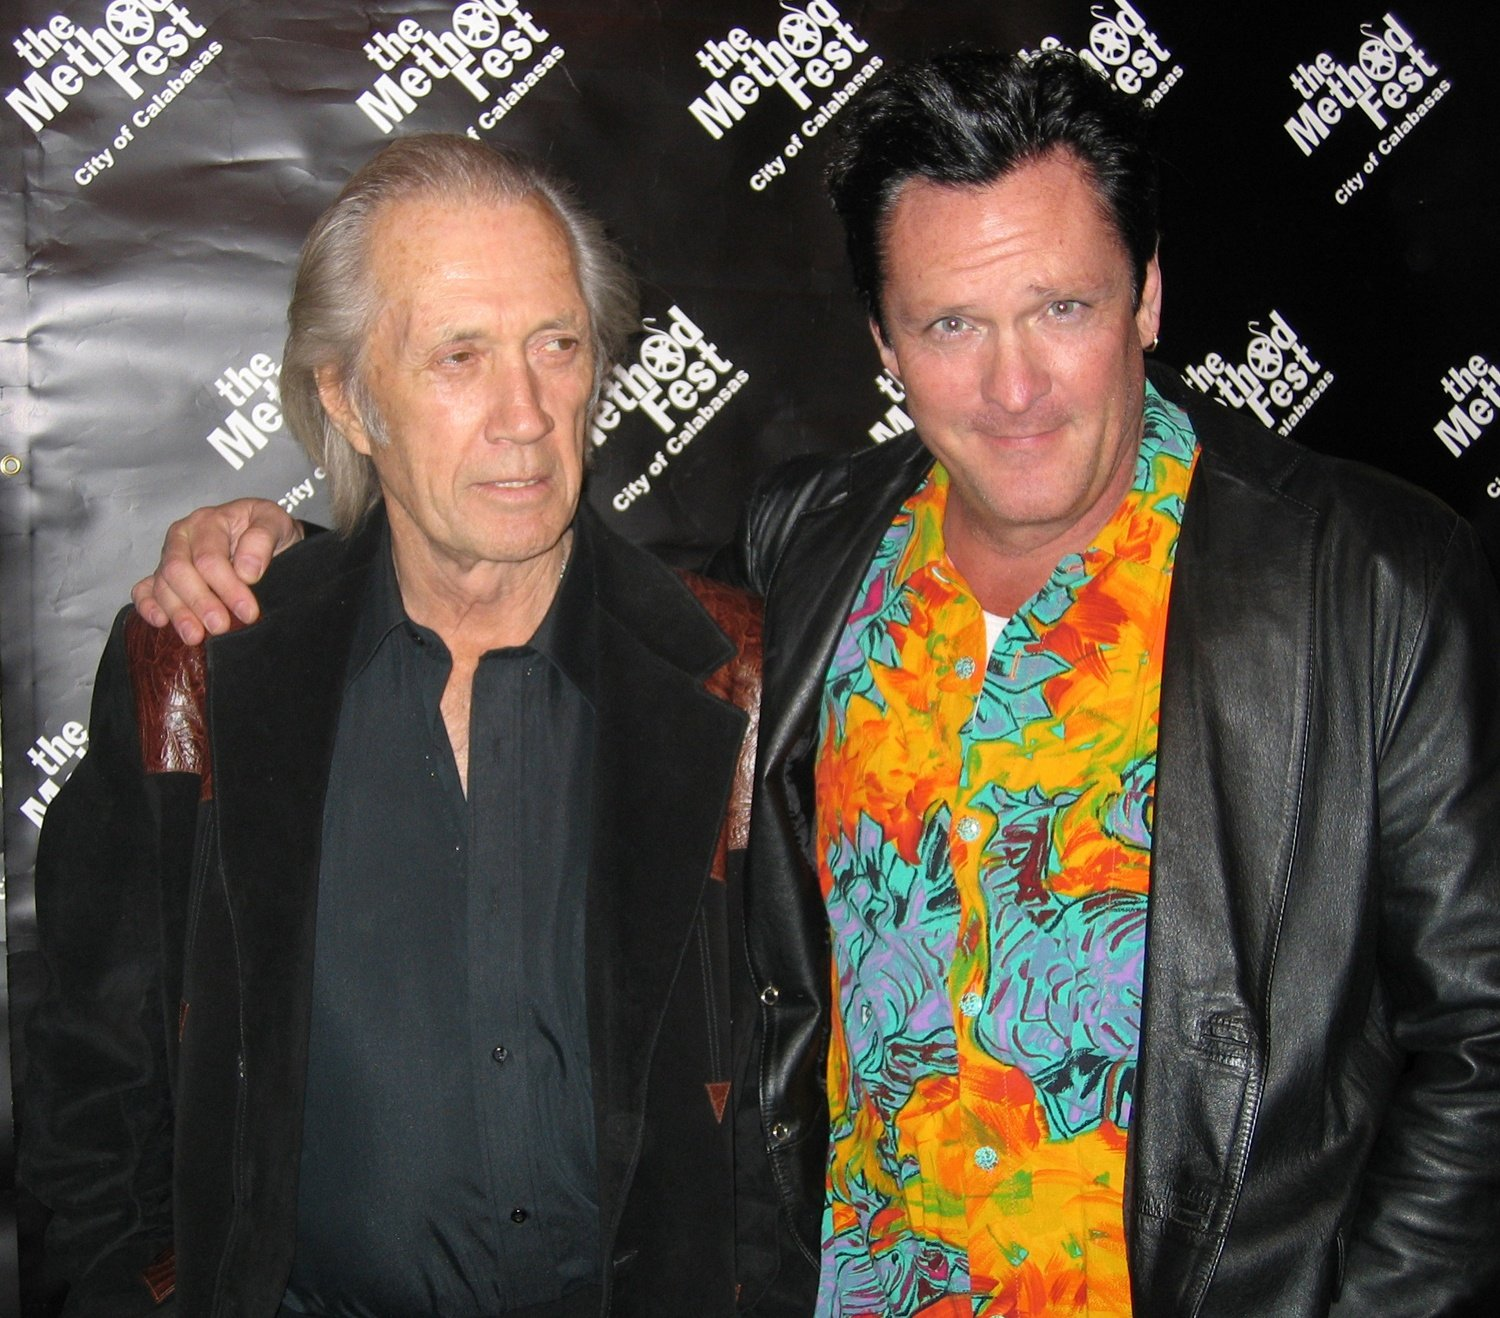 https://0201.nccdn.net/1_2/000/000/16c/ff0/David-Carradine--Michael-Madsen-0124-1500x1318.jpg